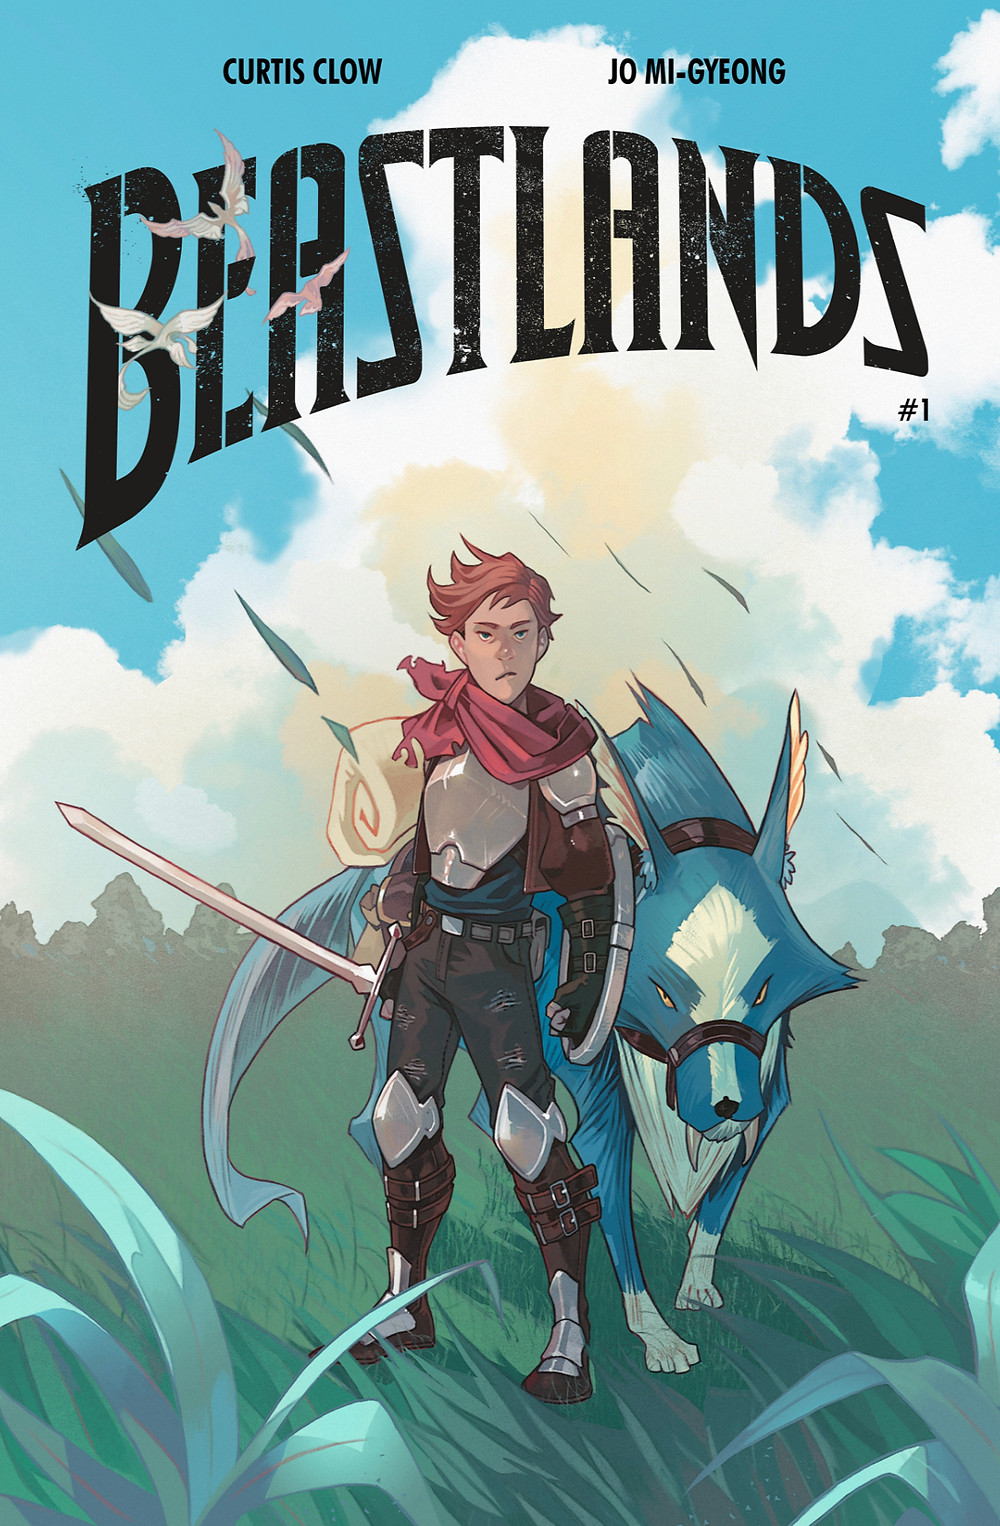 Beastlands #1, cover, self-published, Clow/Mi-Gyeong